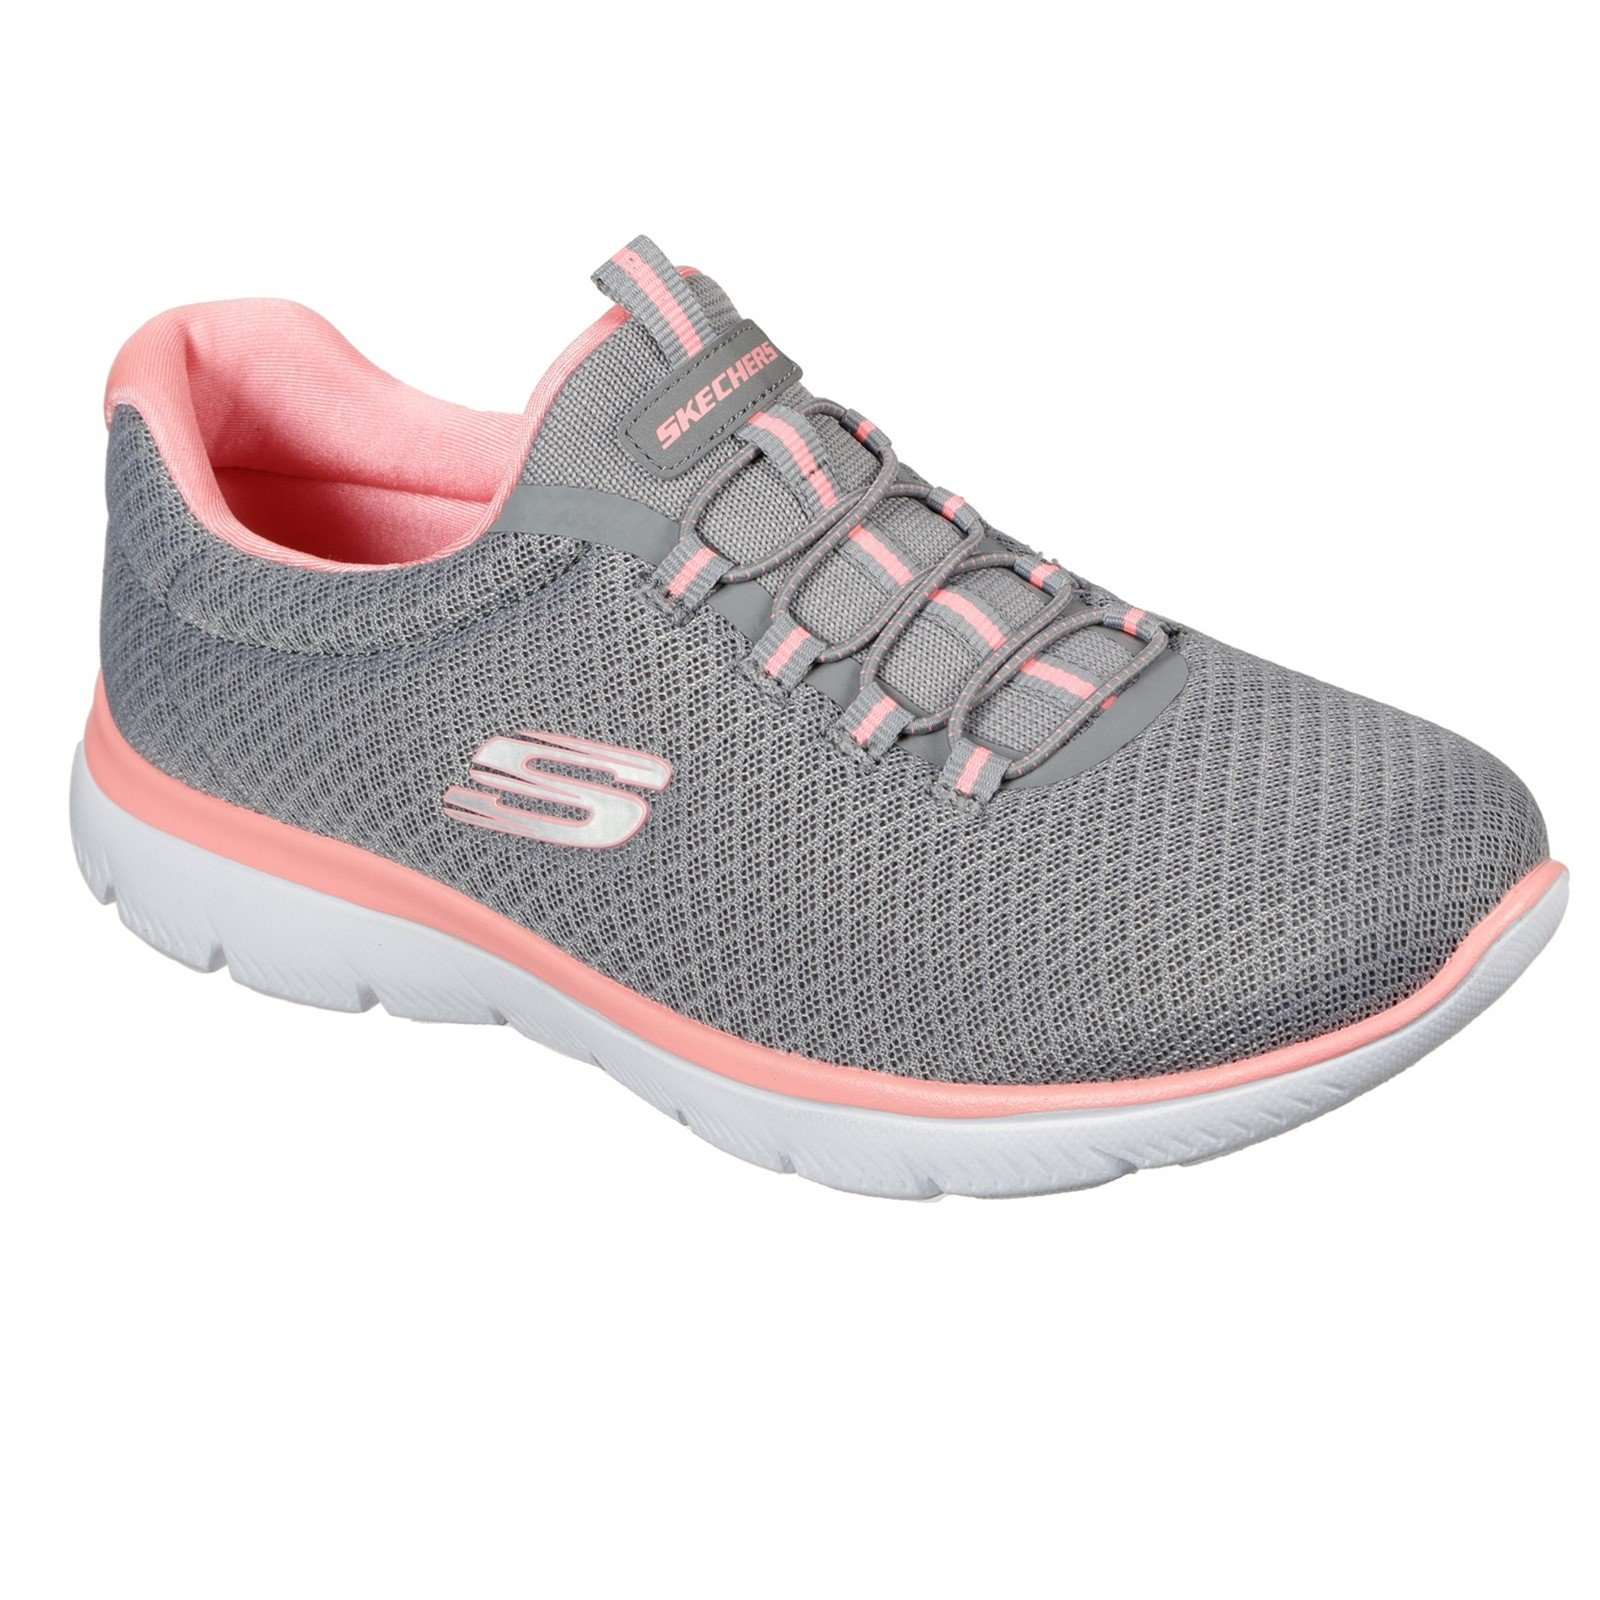 Skechers Women's Summits Slip On Trainer Various Colours 30708 - Grey/Pink 8